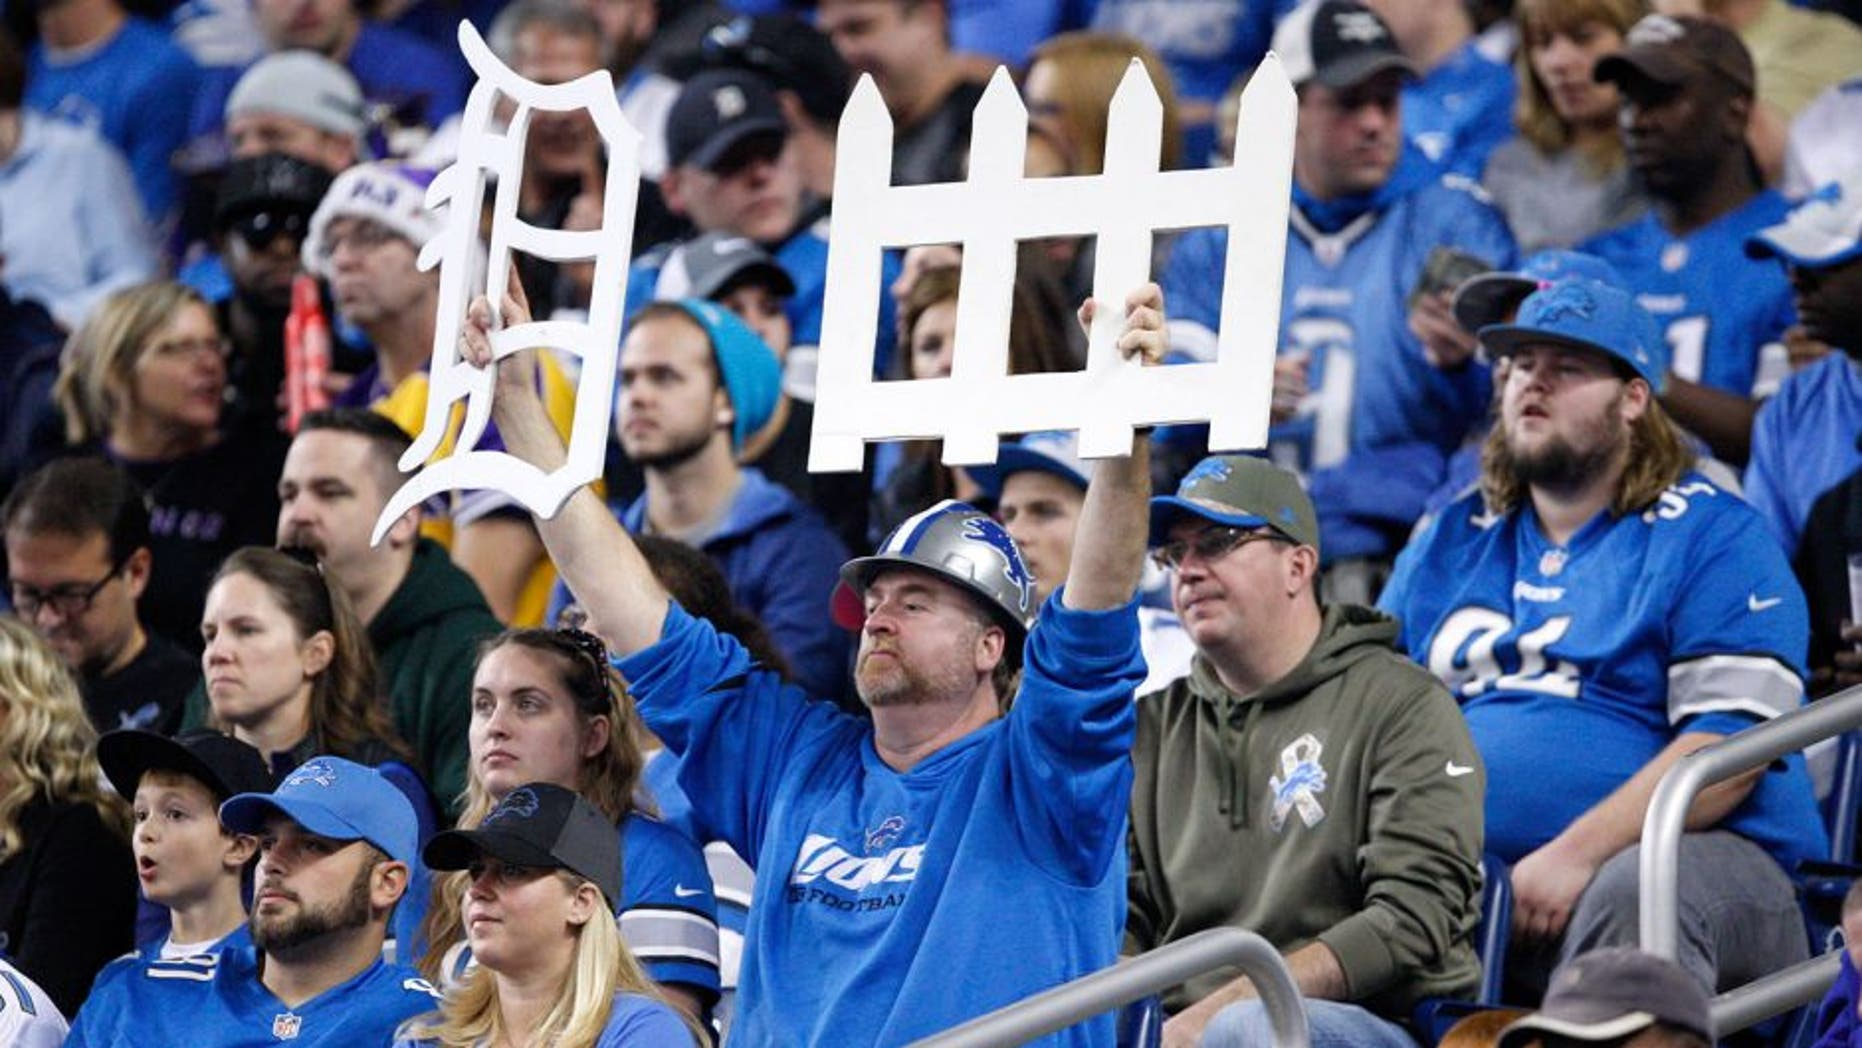 Oct 25, 2015; Detroit, MI, USA; Detroit Lions fan holds up a defense sign during the first quarter against the Minnesota Vikings at Ford Field. Vikings win 28-19. Mandatory Credit: Raj Mehta-USA TODAY Sports